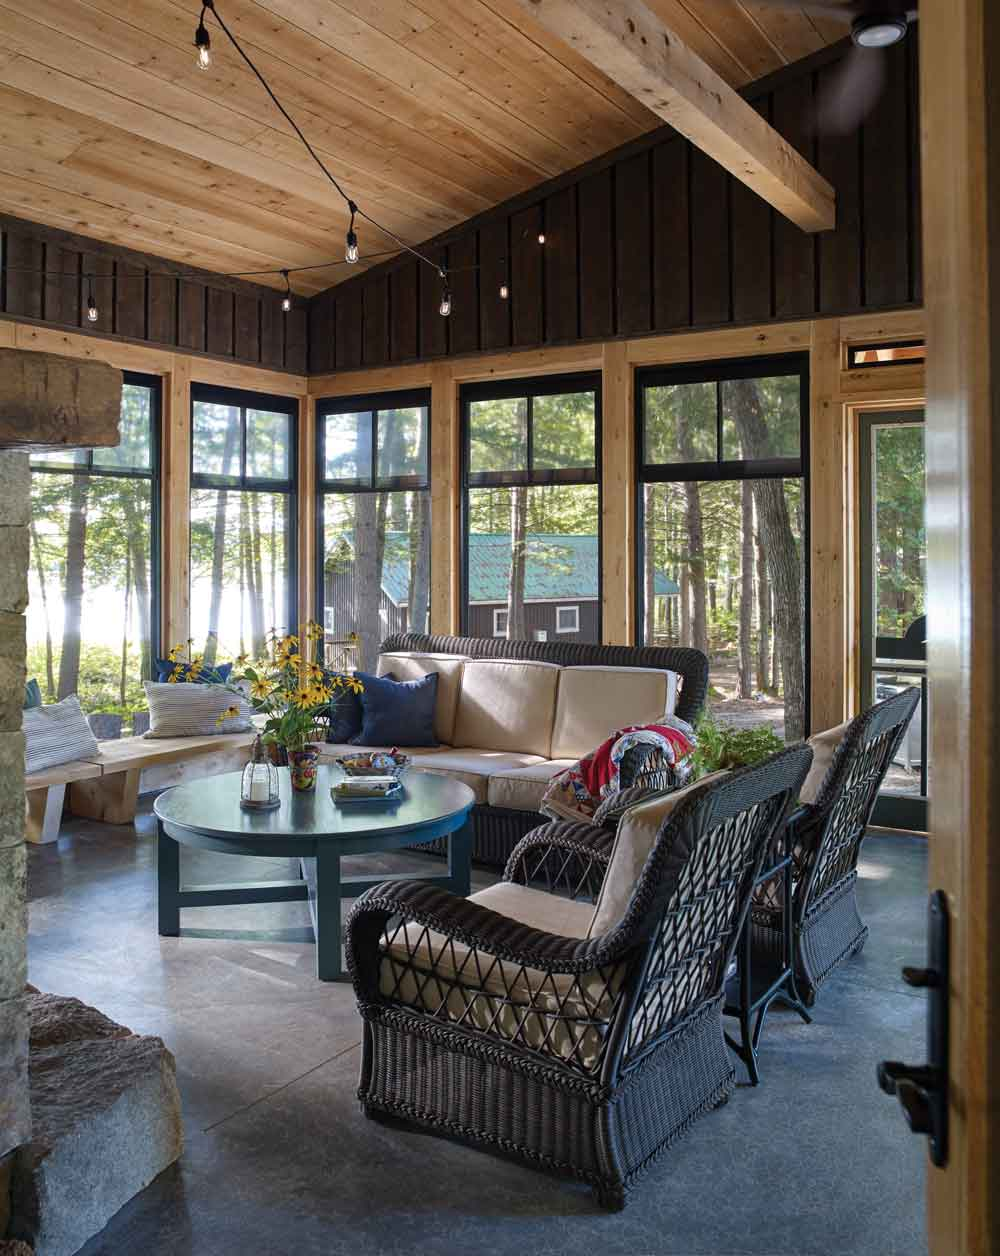 The Ritters' 570-square-foot screened porch